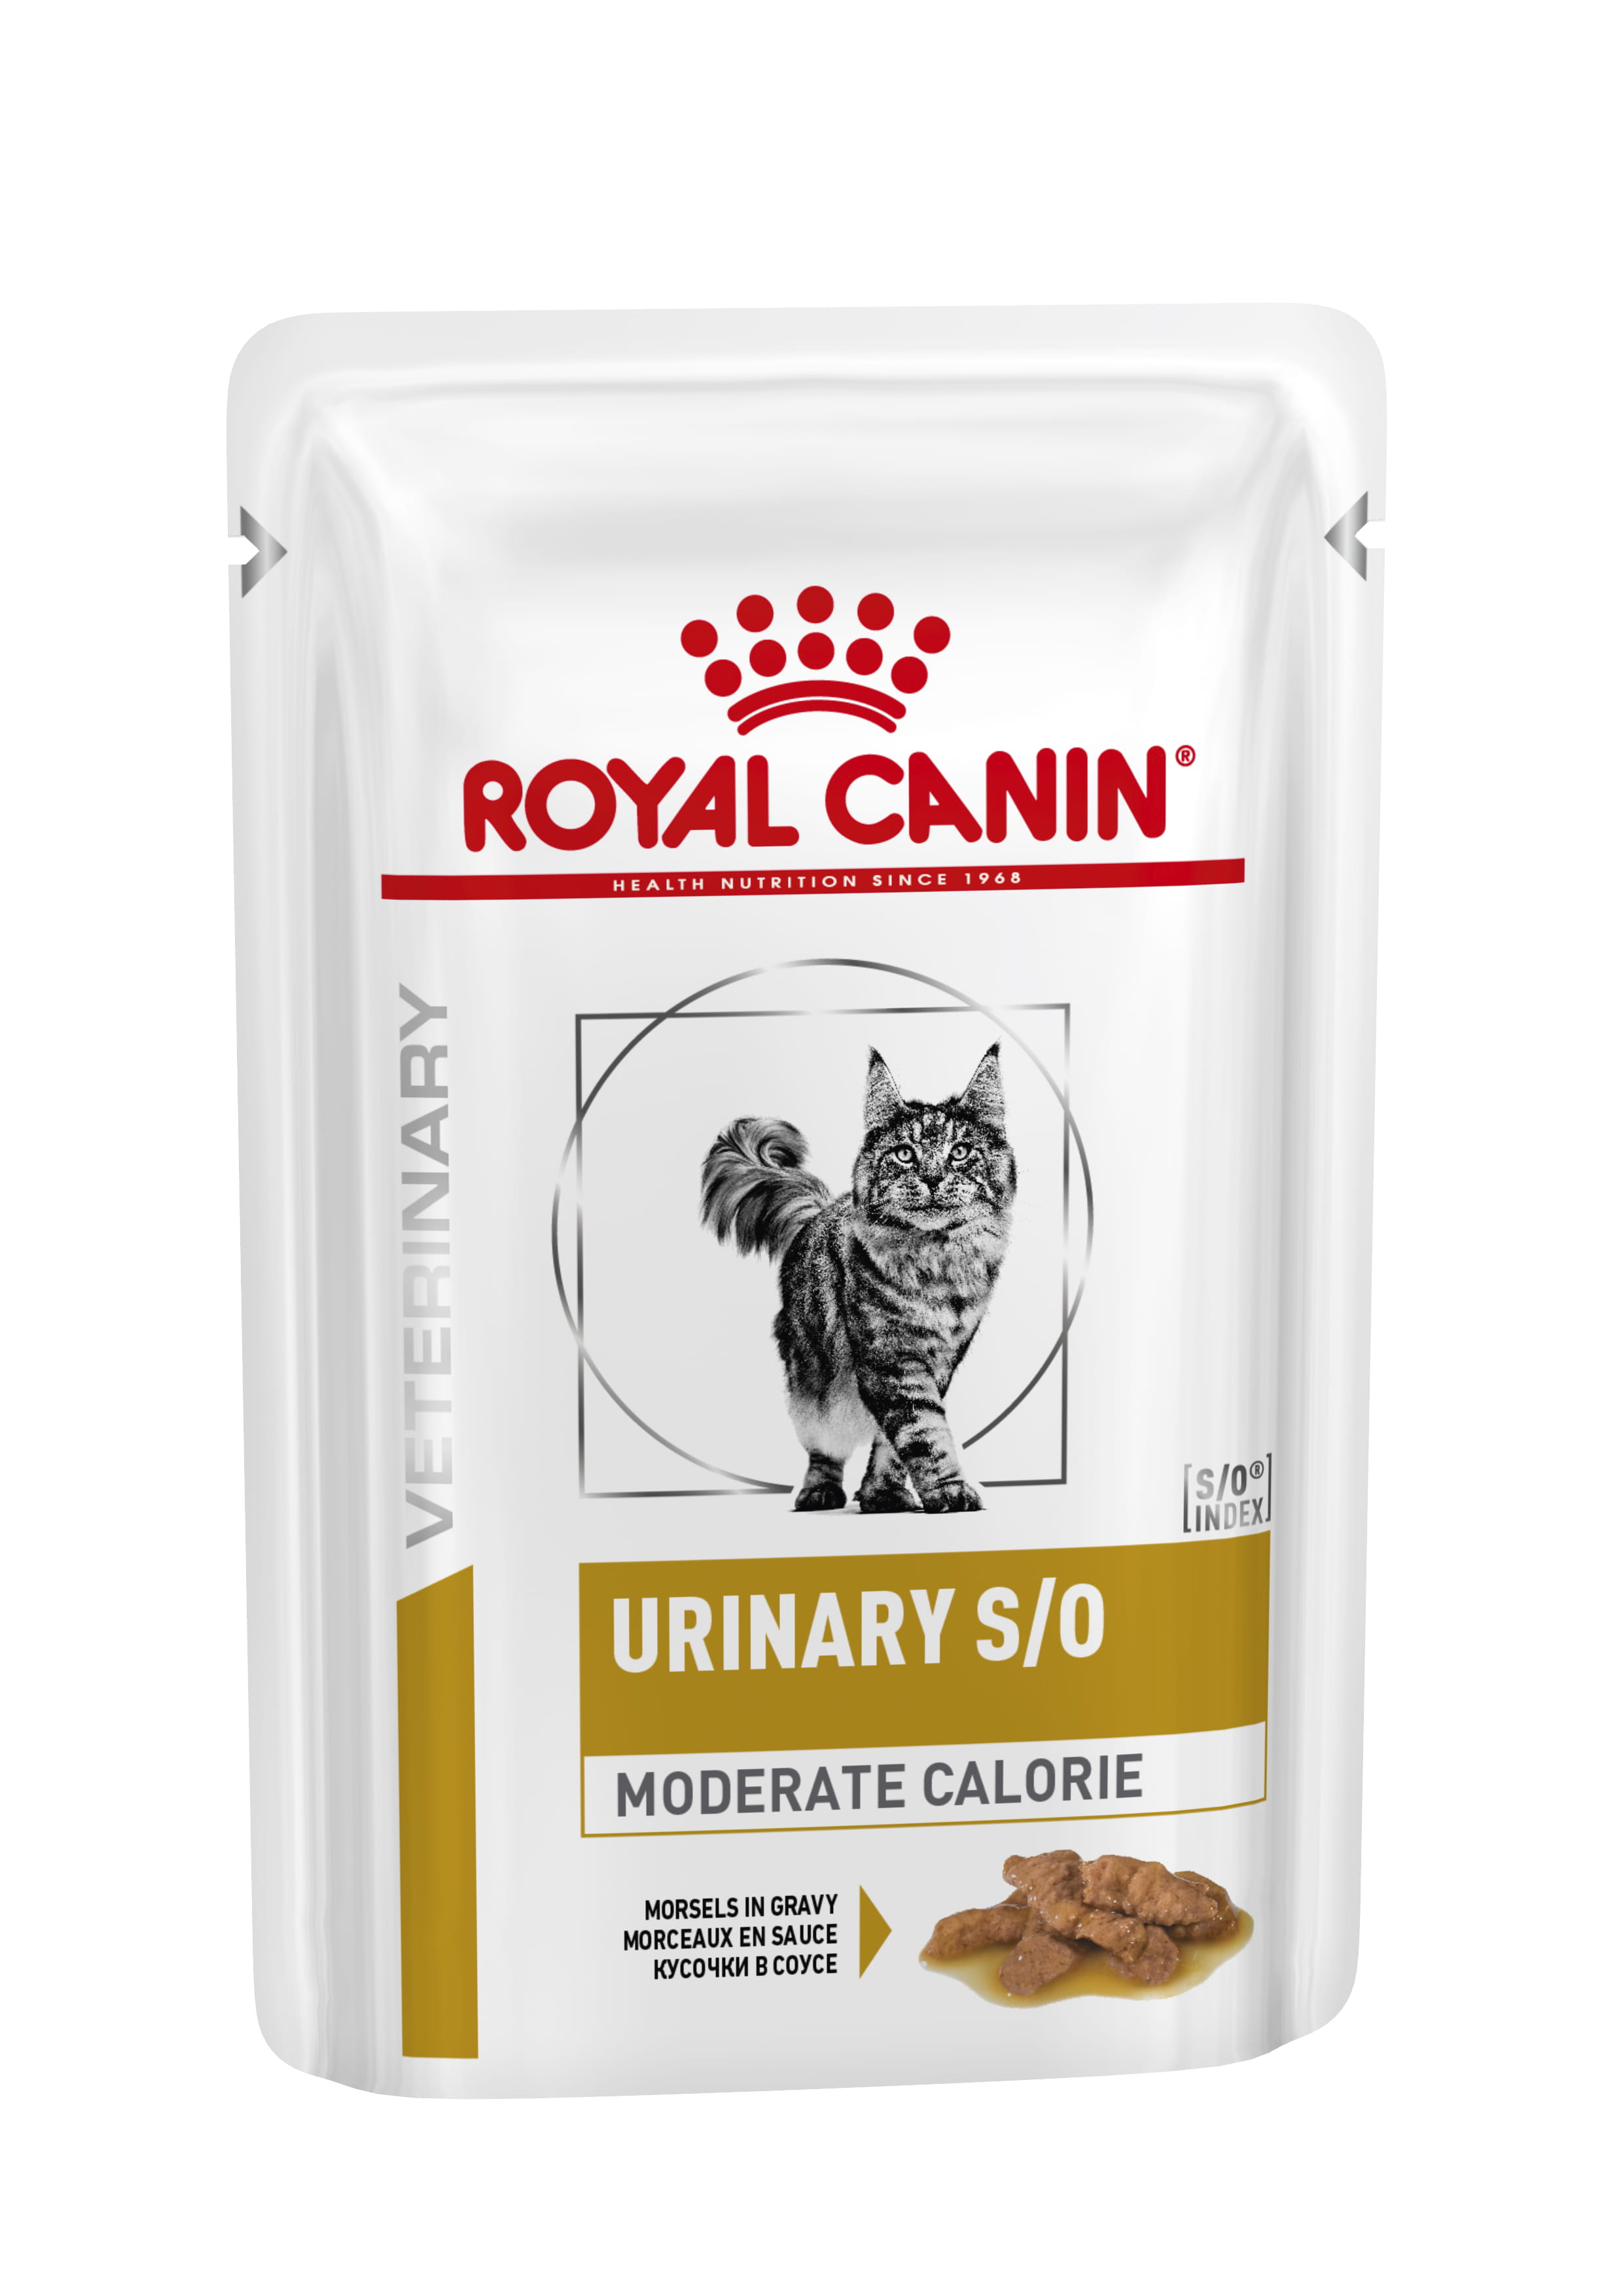 Feline Urinary S/O Moderate Calorie Morsels in Gravy